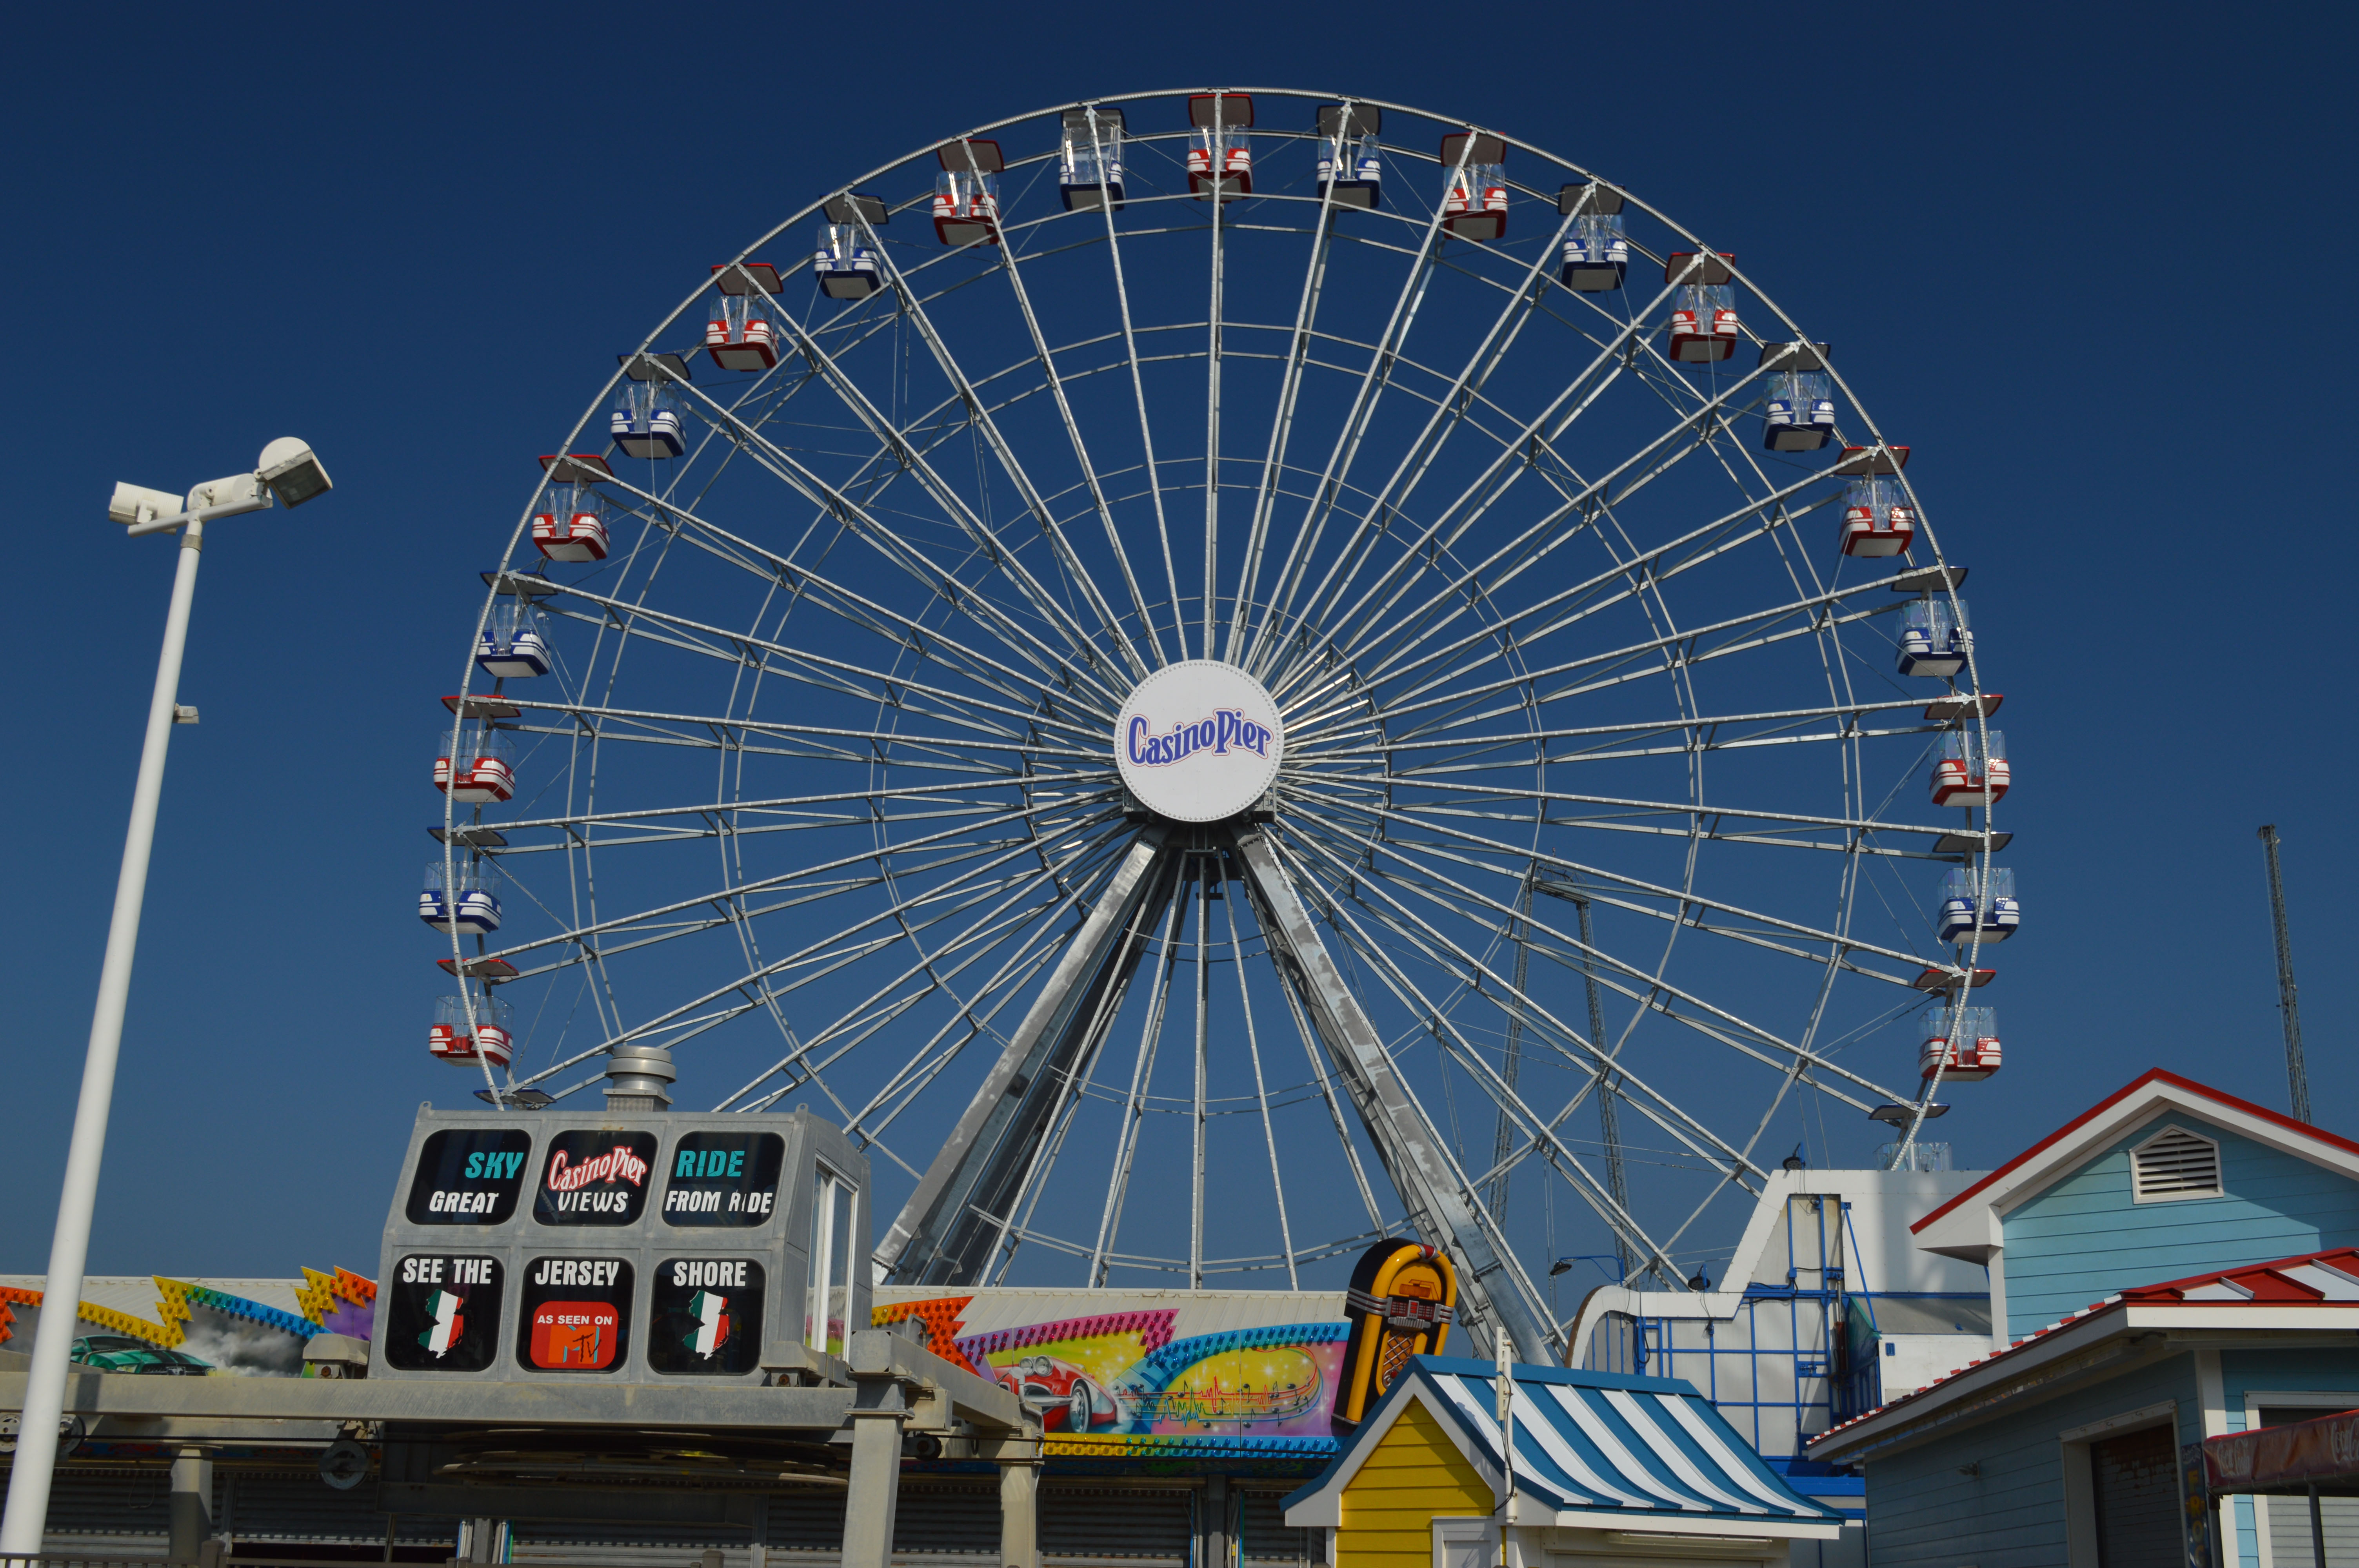 New Ferris Wheel Towers Over Casino Pier, But When Will It